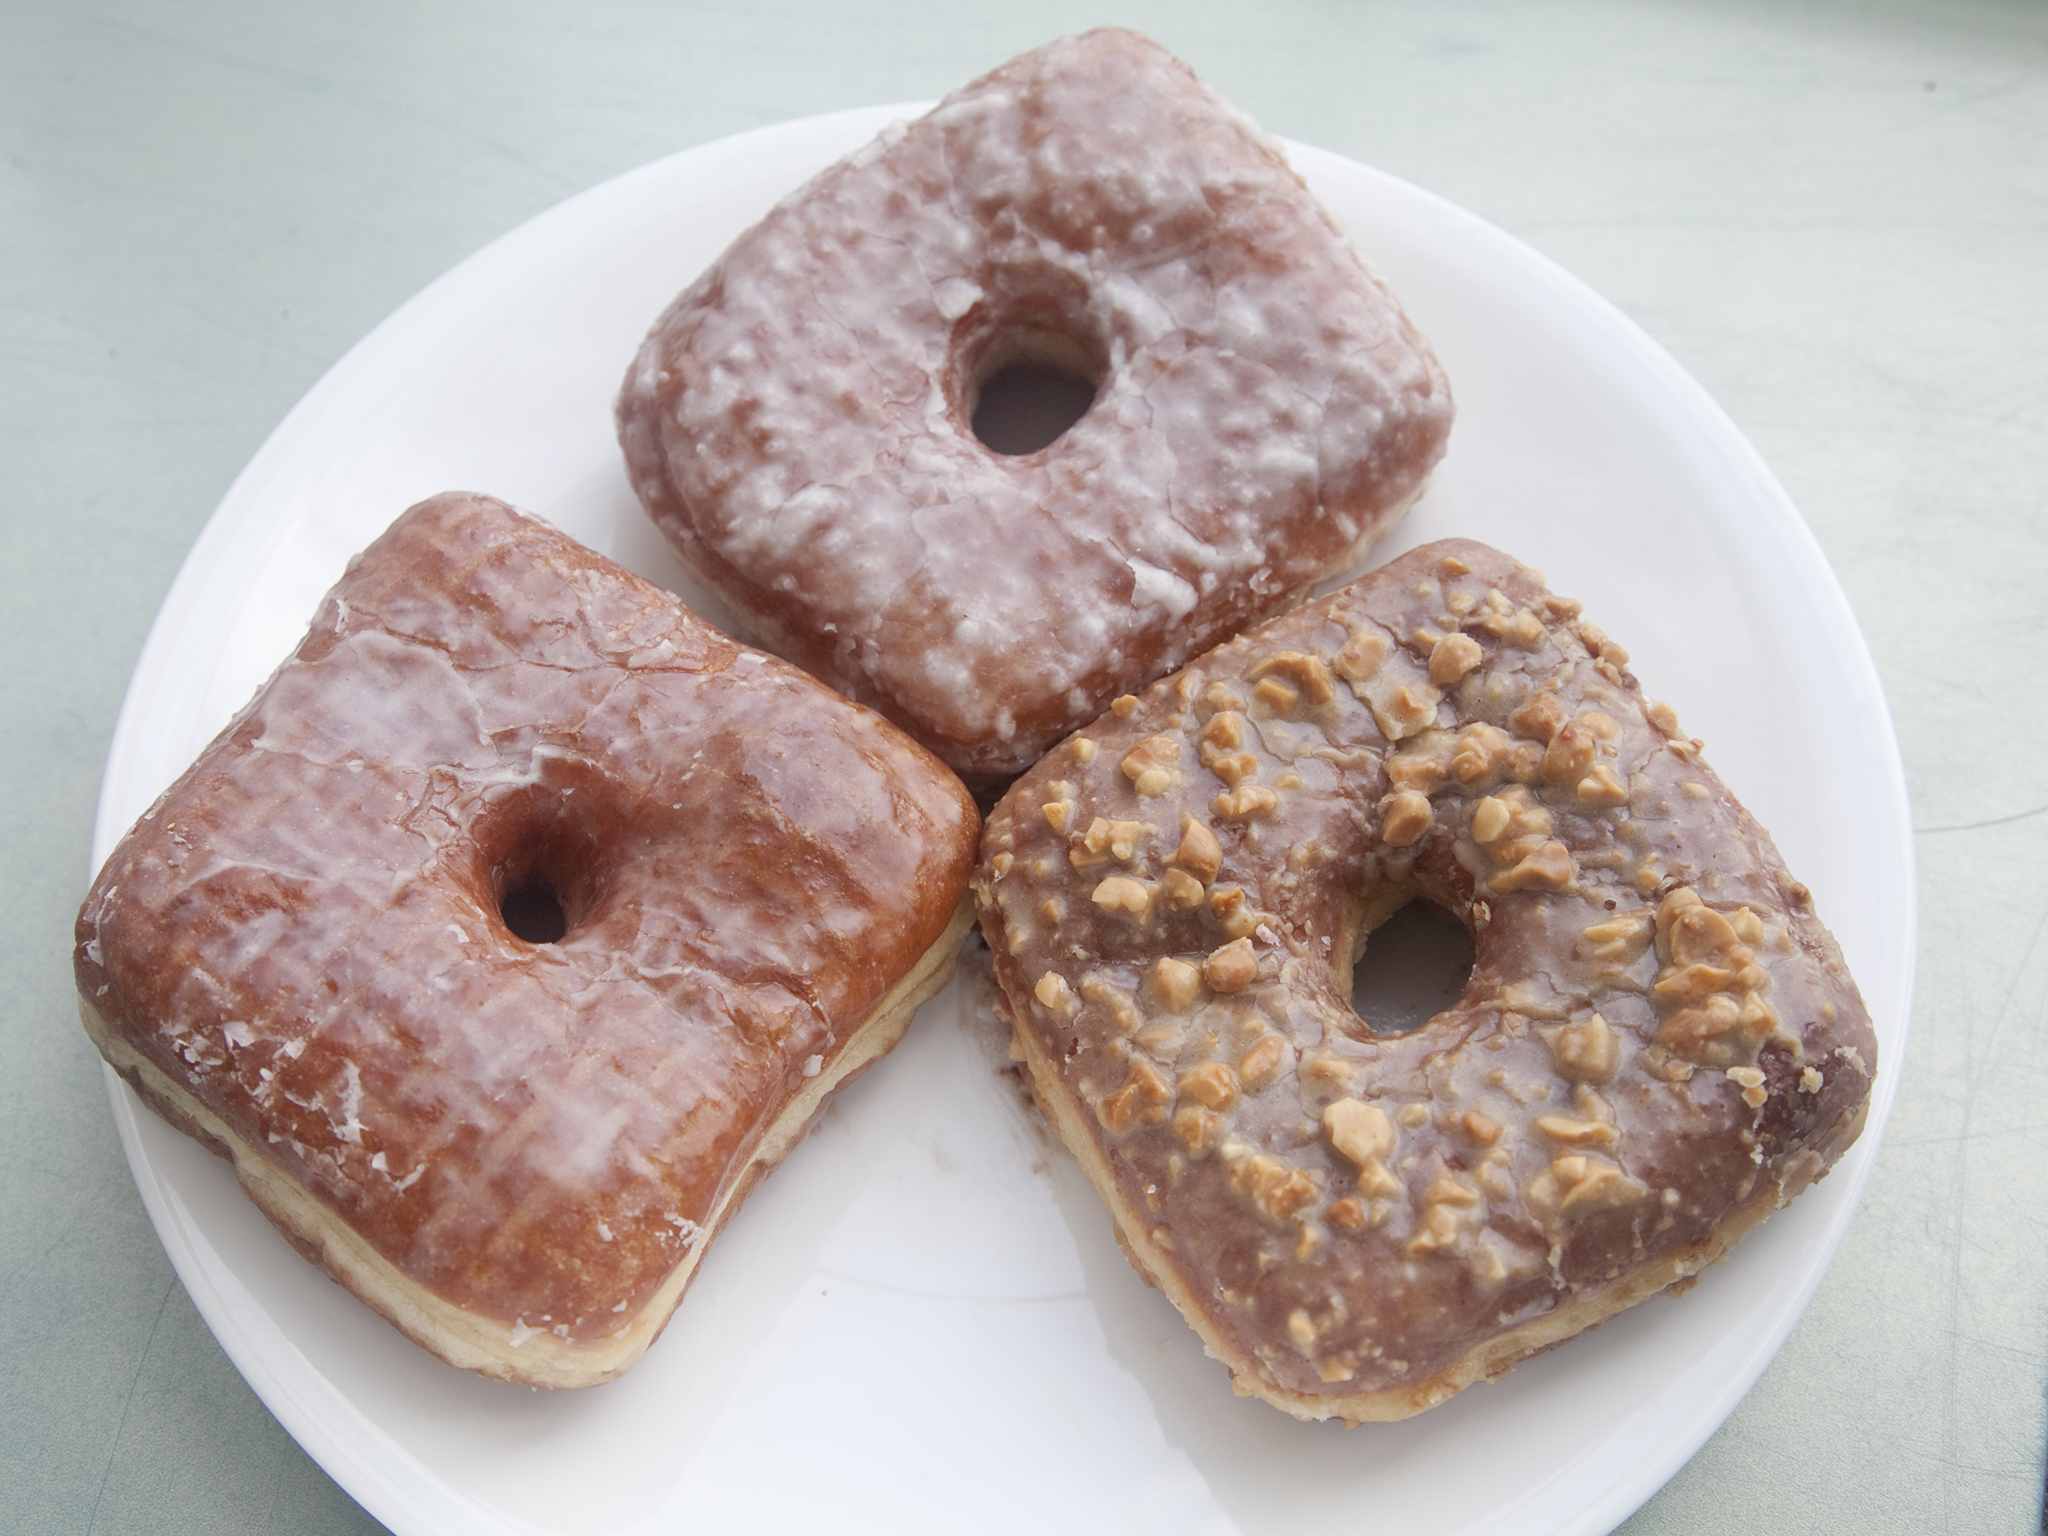 Best doughnut shops for adventurous eaters: Doughnut Plant